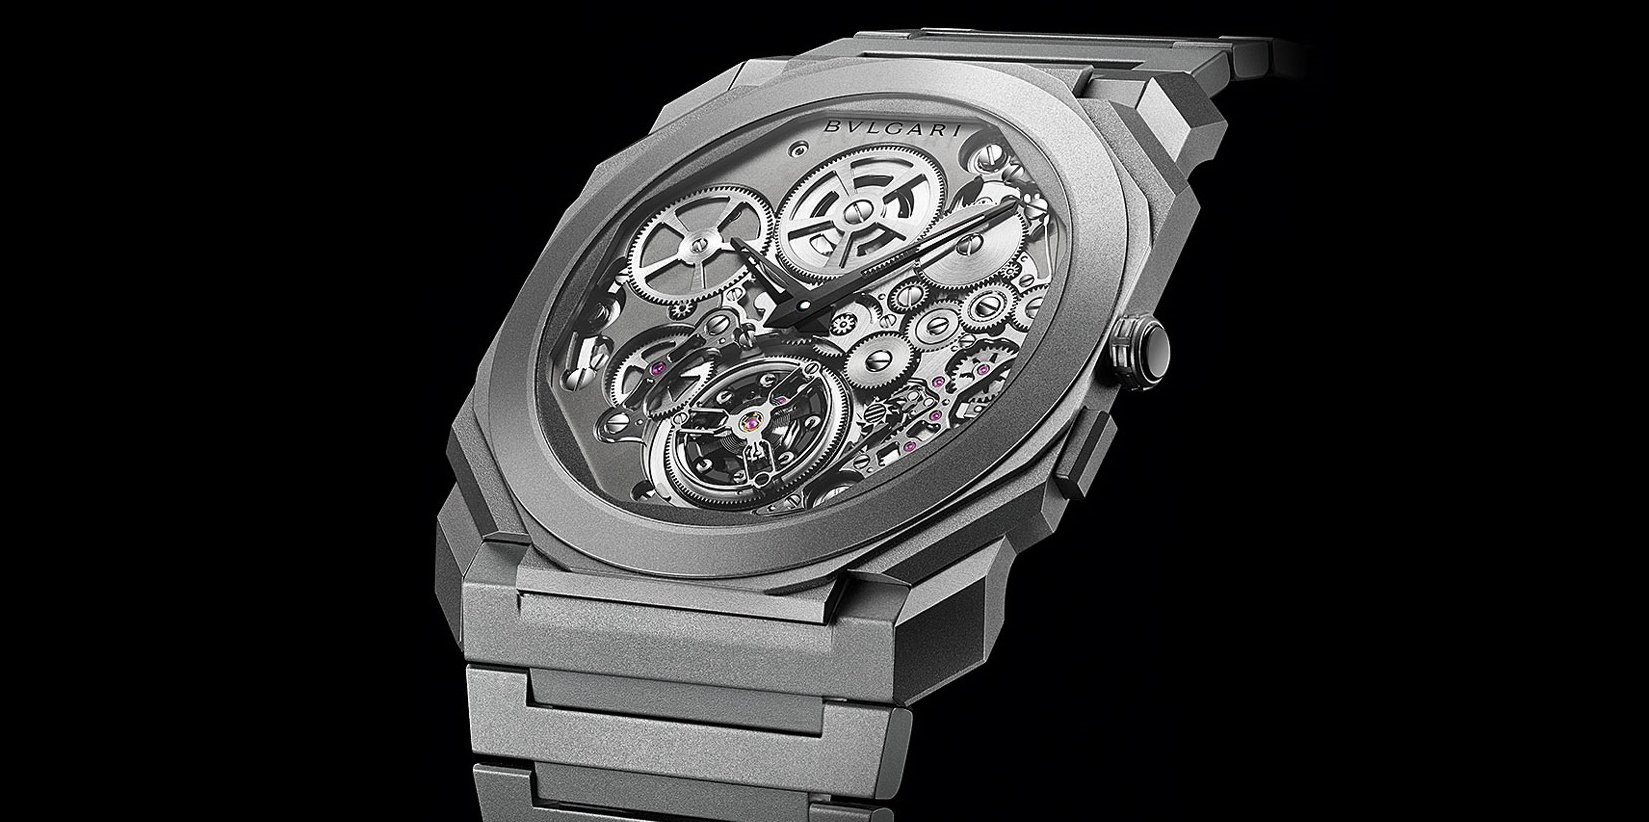 Bulgari_2018_octo_finissimo_-_europa_star_watch_magazine 2020